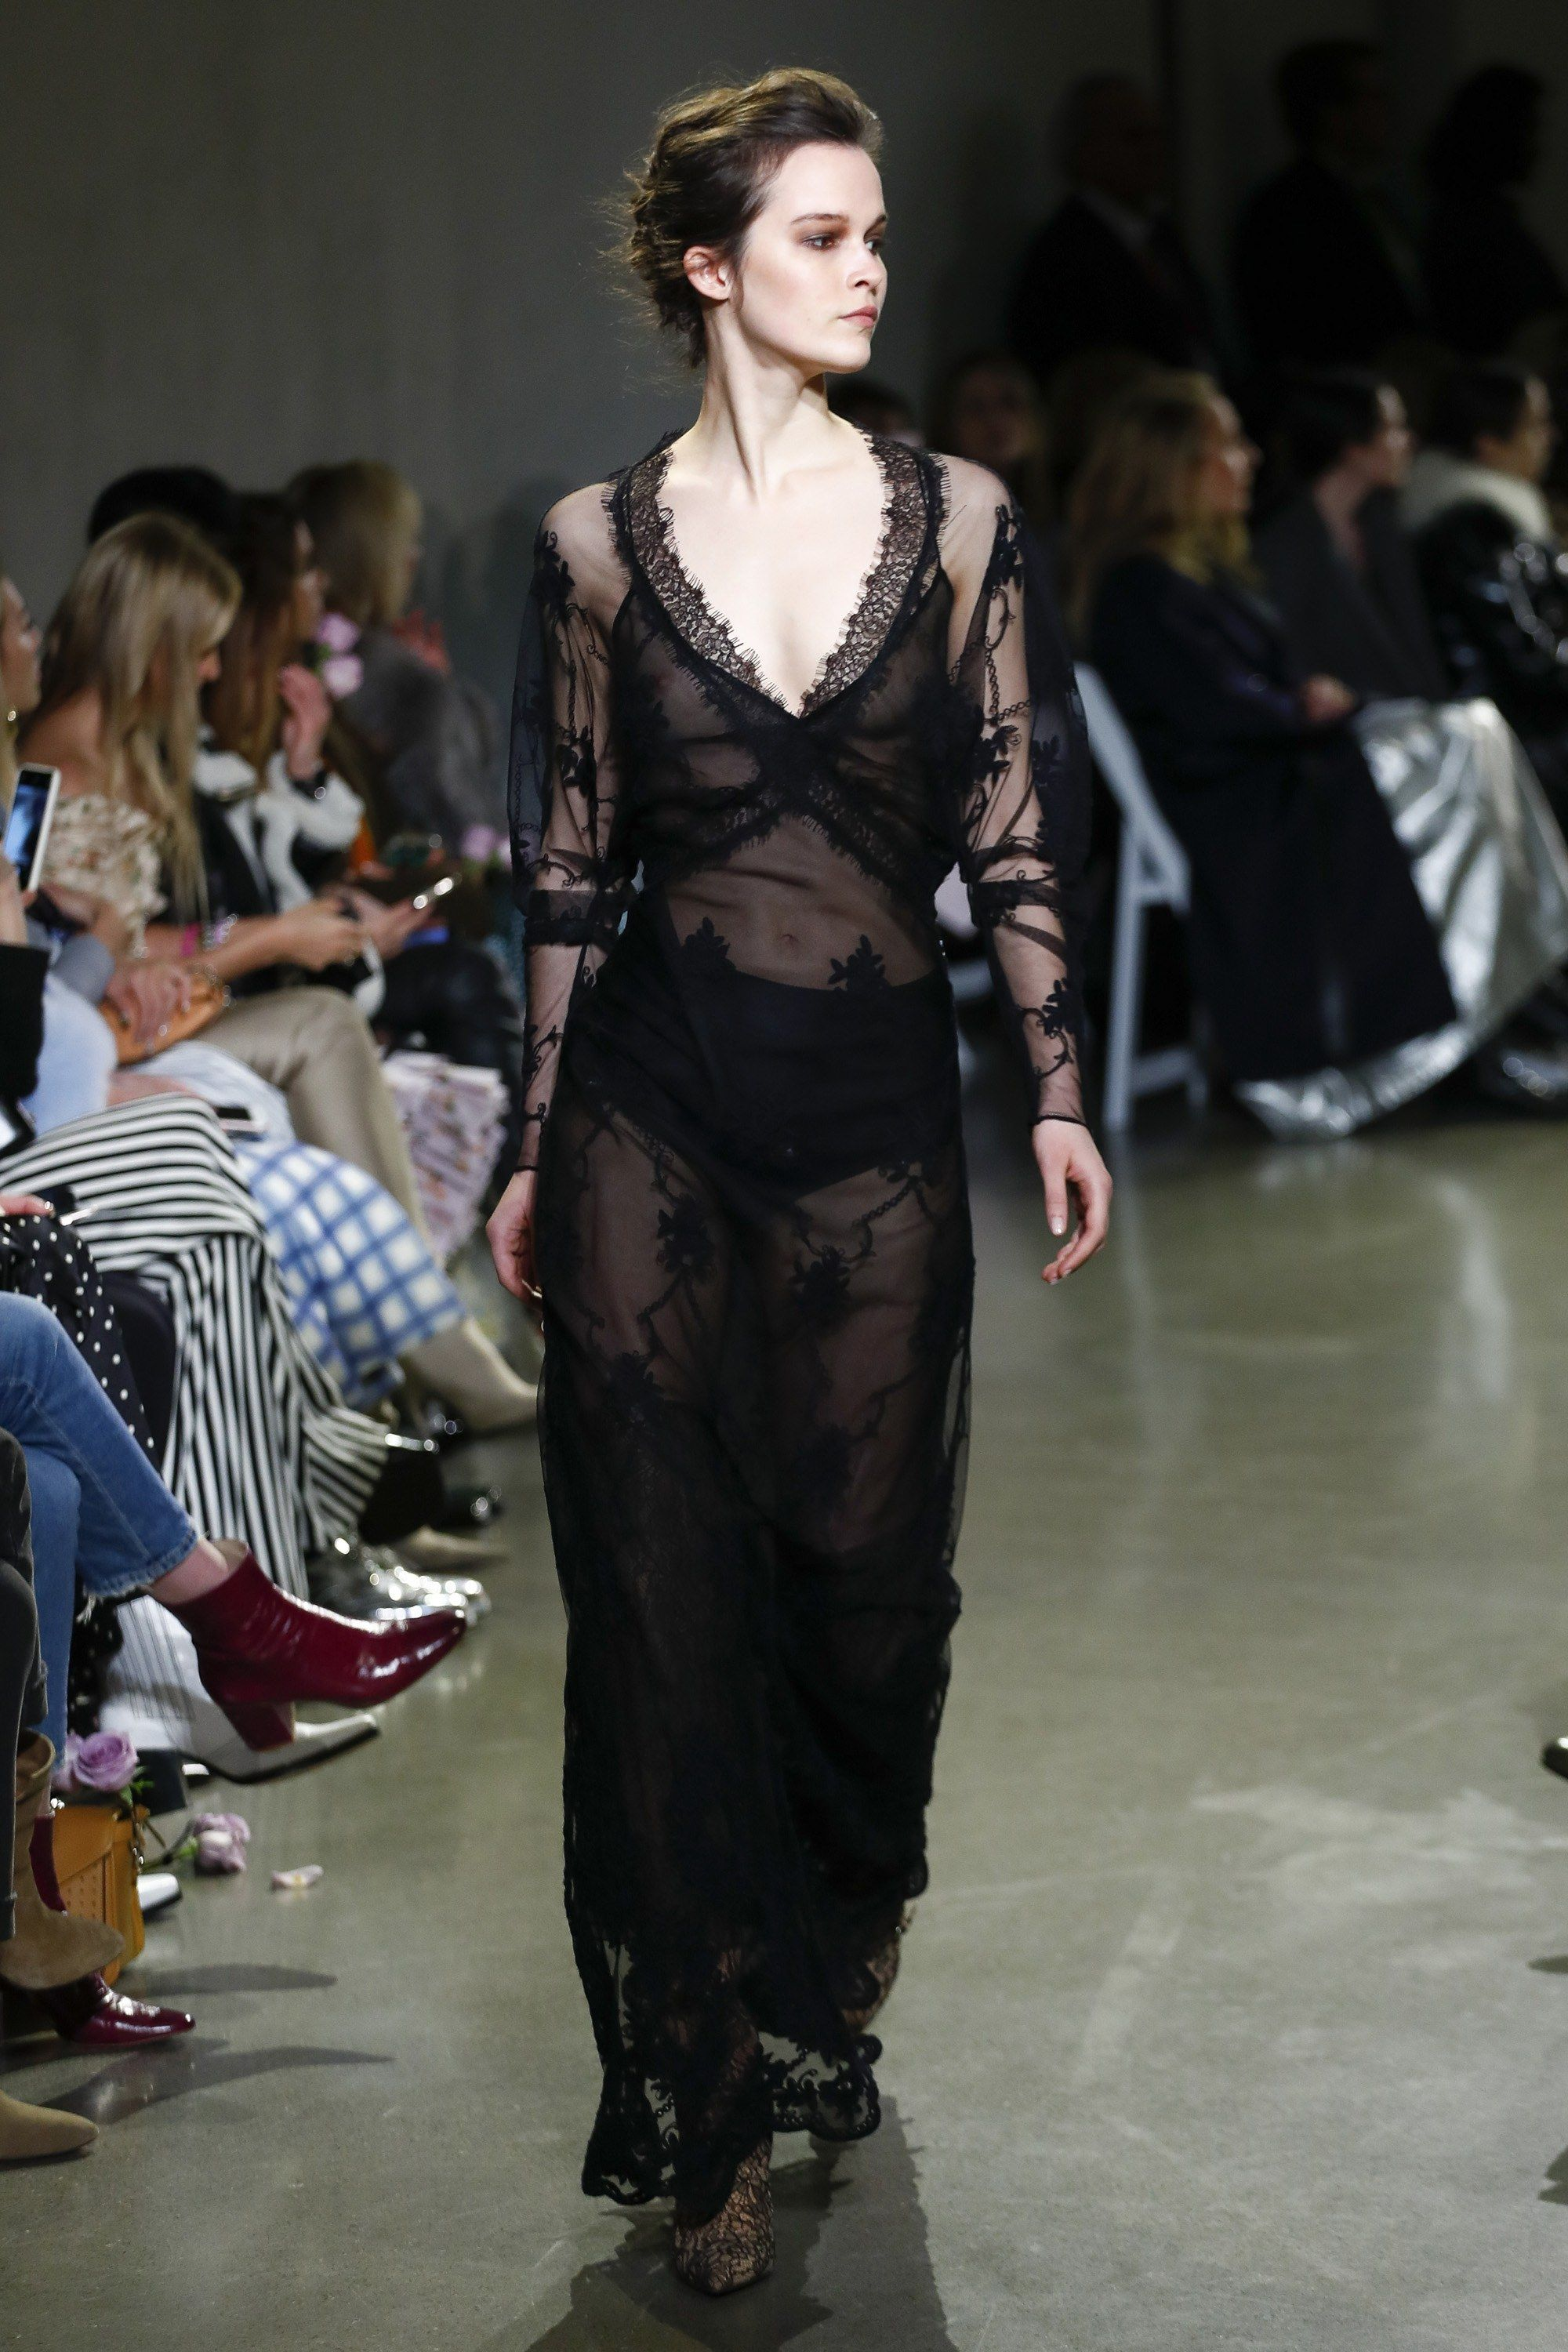 Brock Collection Fall 2018 Ready-to-Wear Fashion Show in